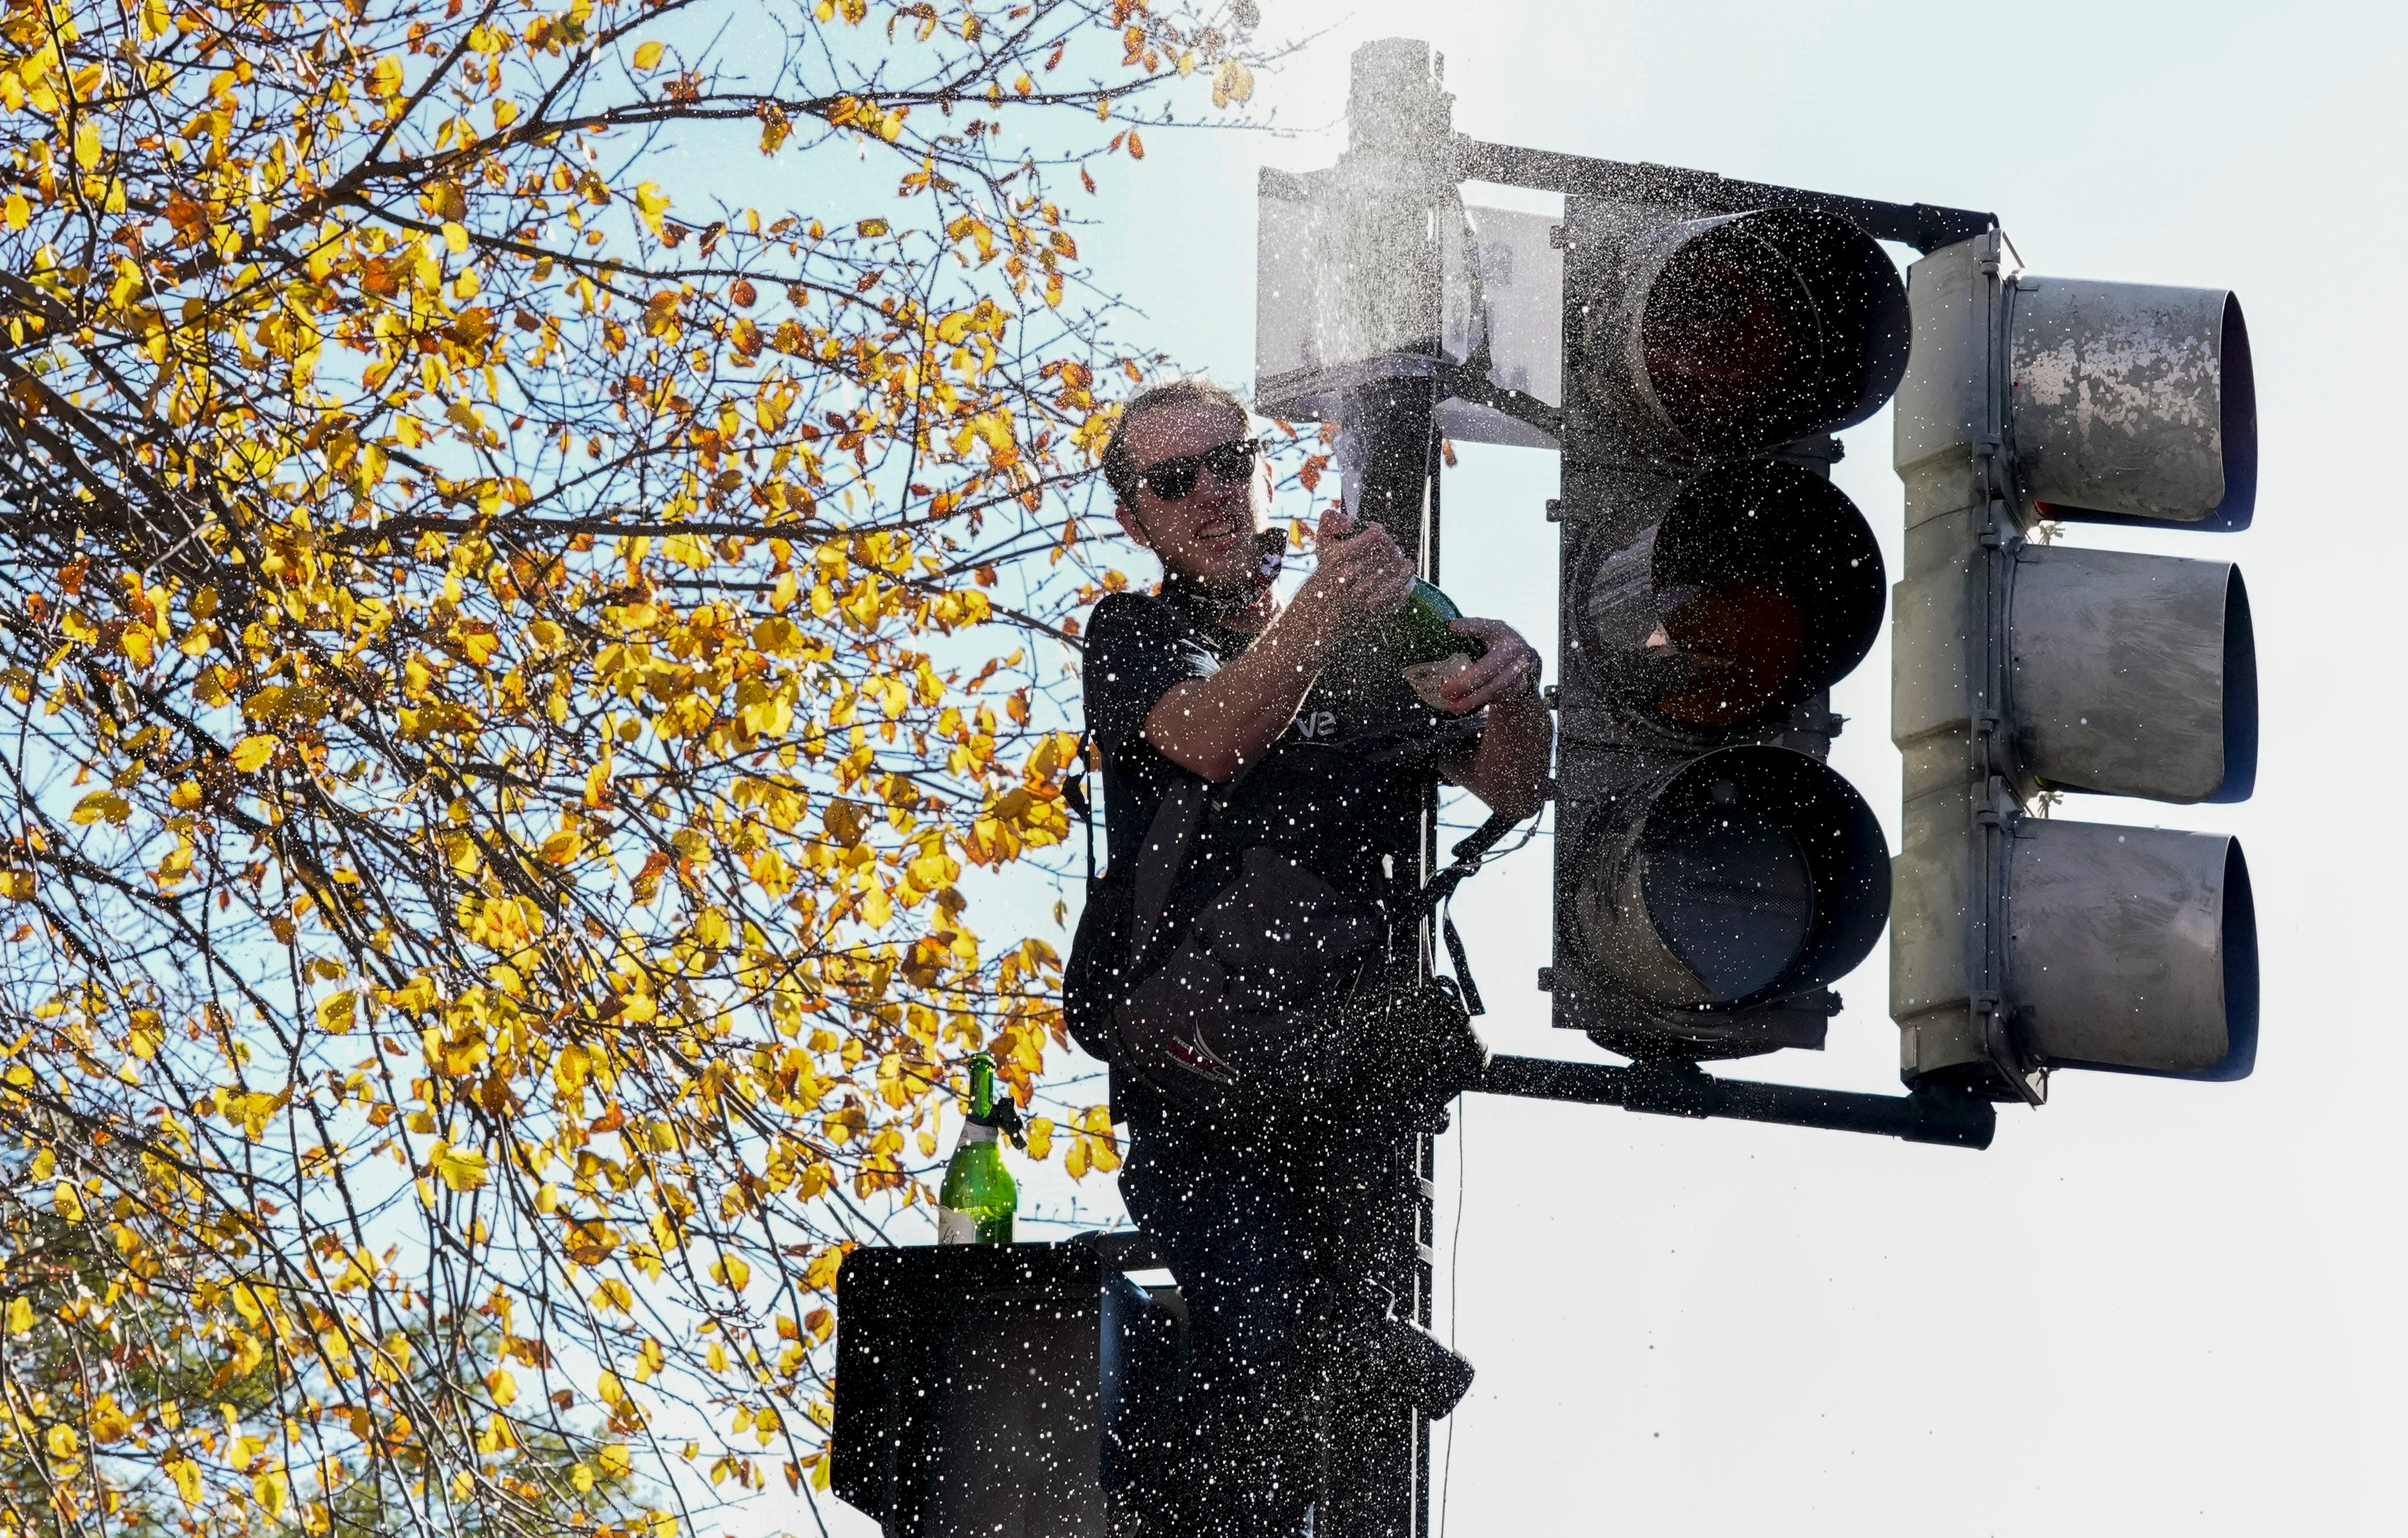 A man sprays champagne from atop a traffic light in Black Lives Matter Plaza in Washington, D.C.